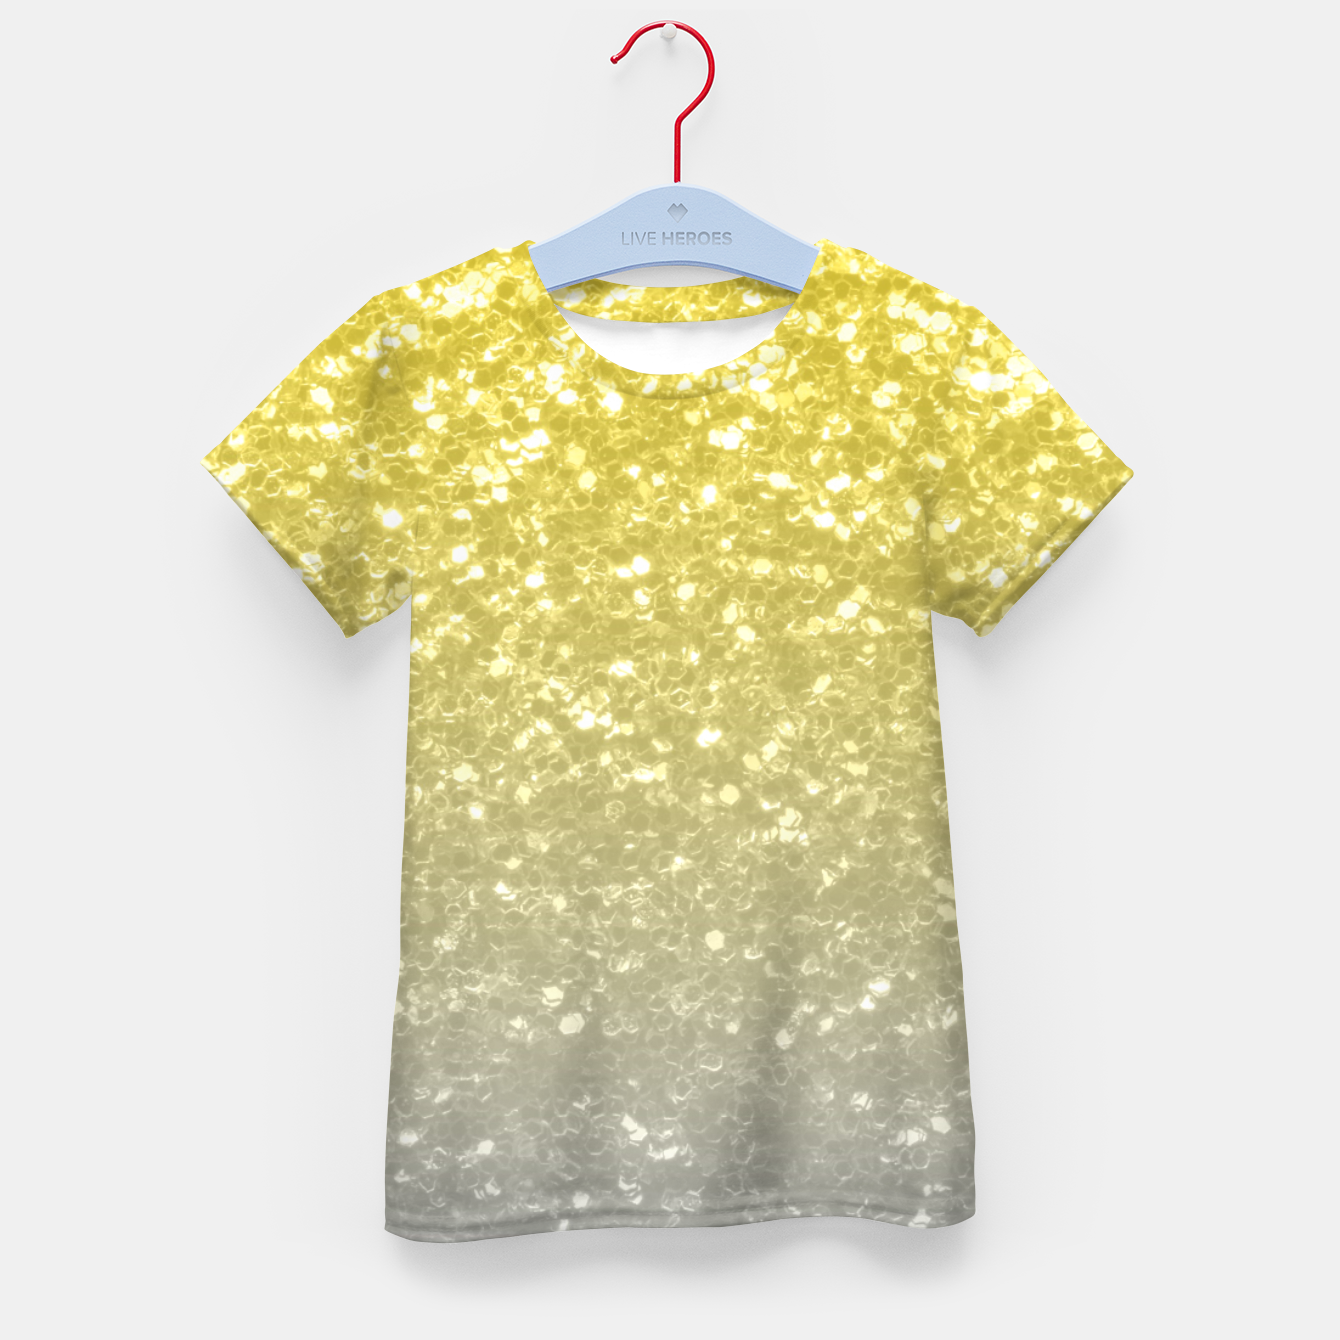 Image of Light ultimate grey illuminating yellow sparkles Kid's t-shirt - Live Heroes